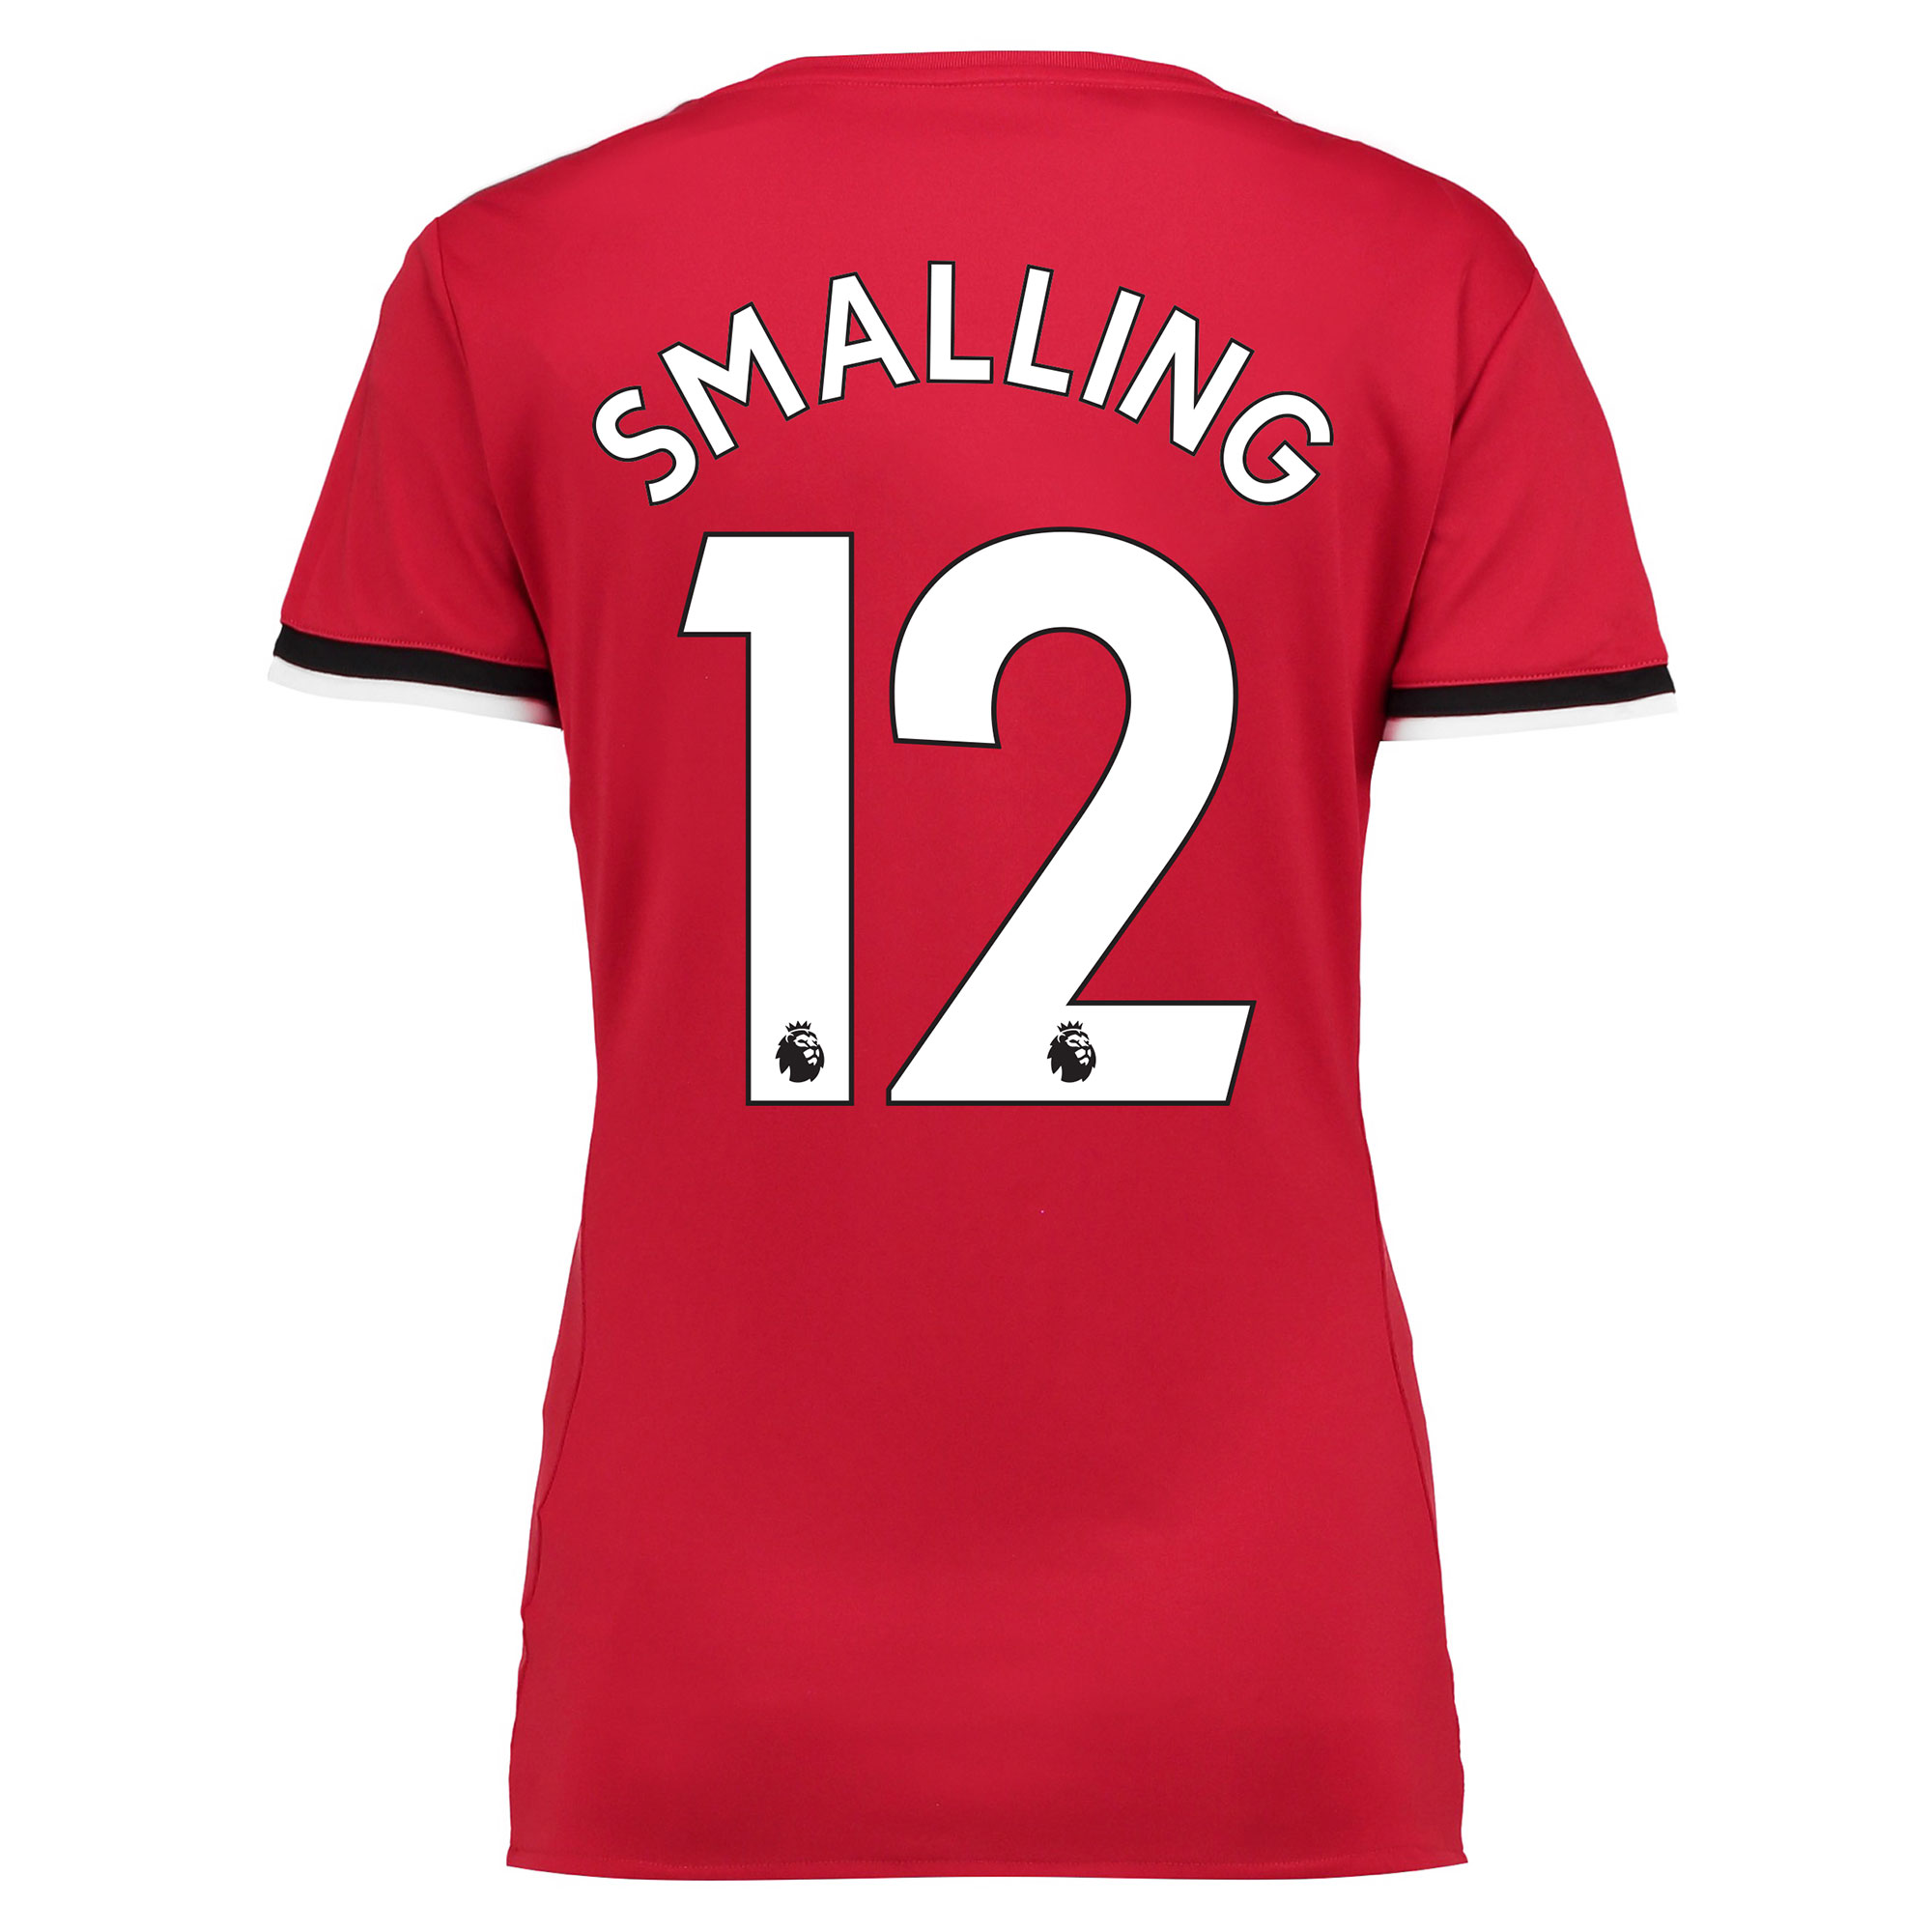 Manchester United Home Shirt 2017-18 - Womens with Smalling 12 printin